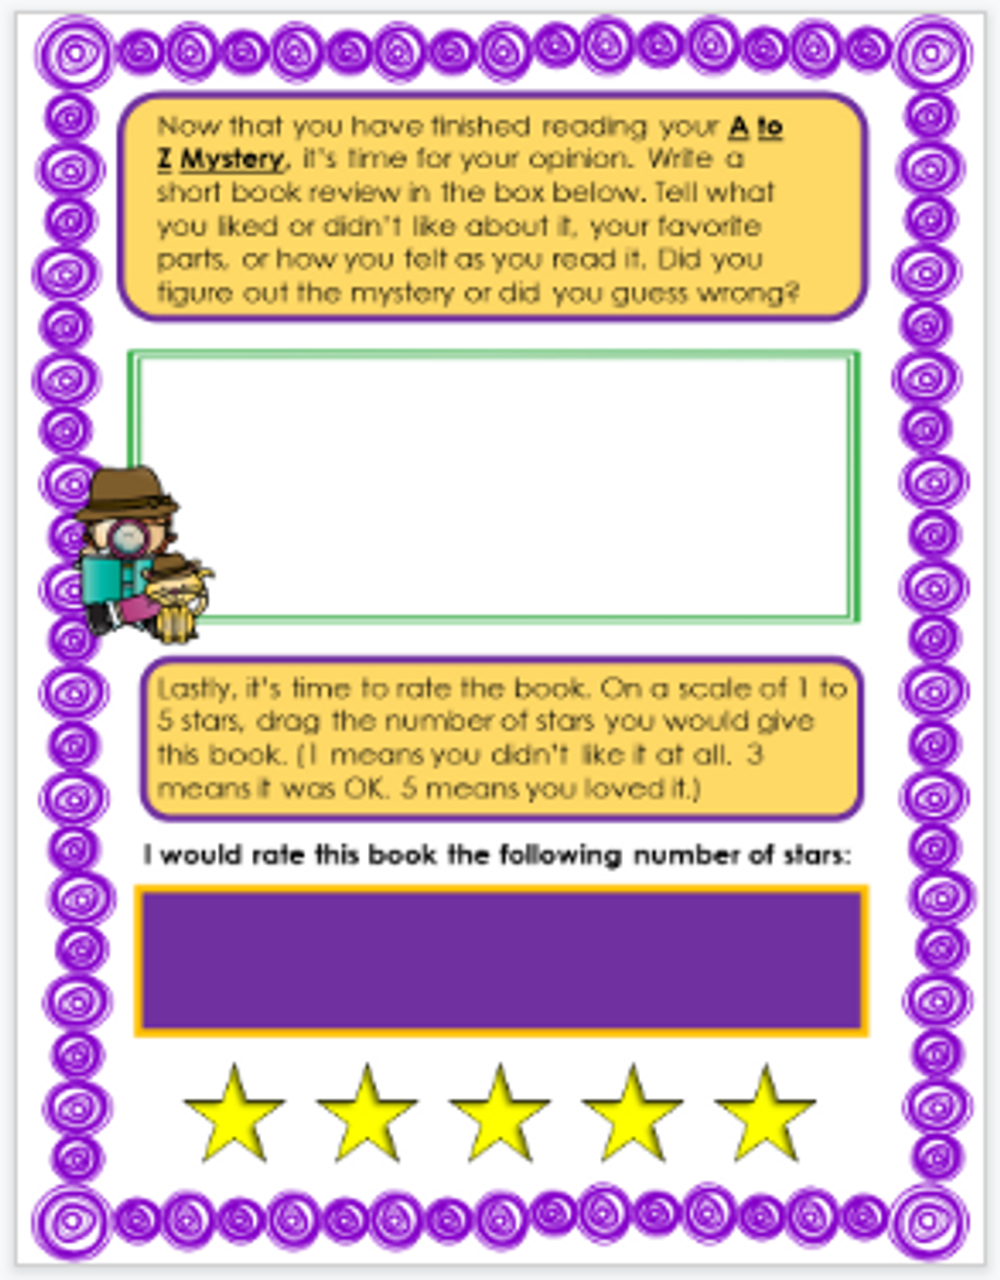 A to Z Mysteries Digital Novel Study in Google Slides